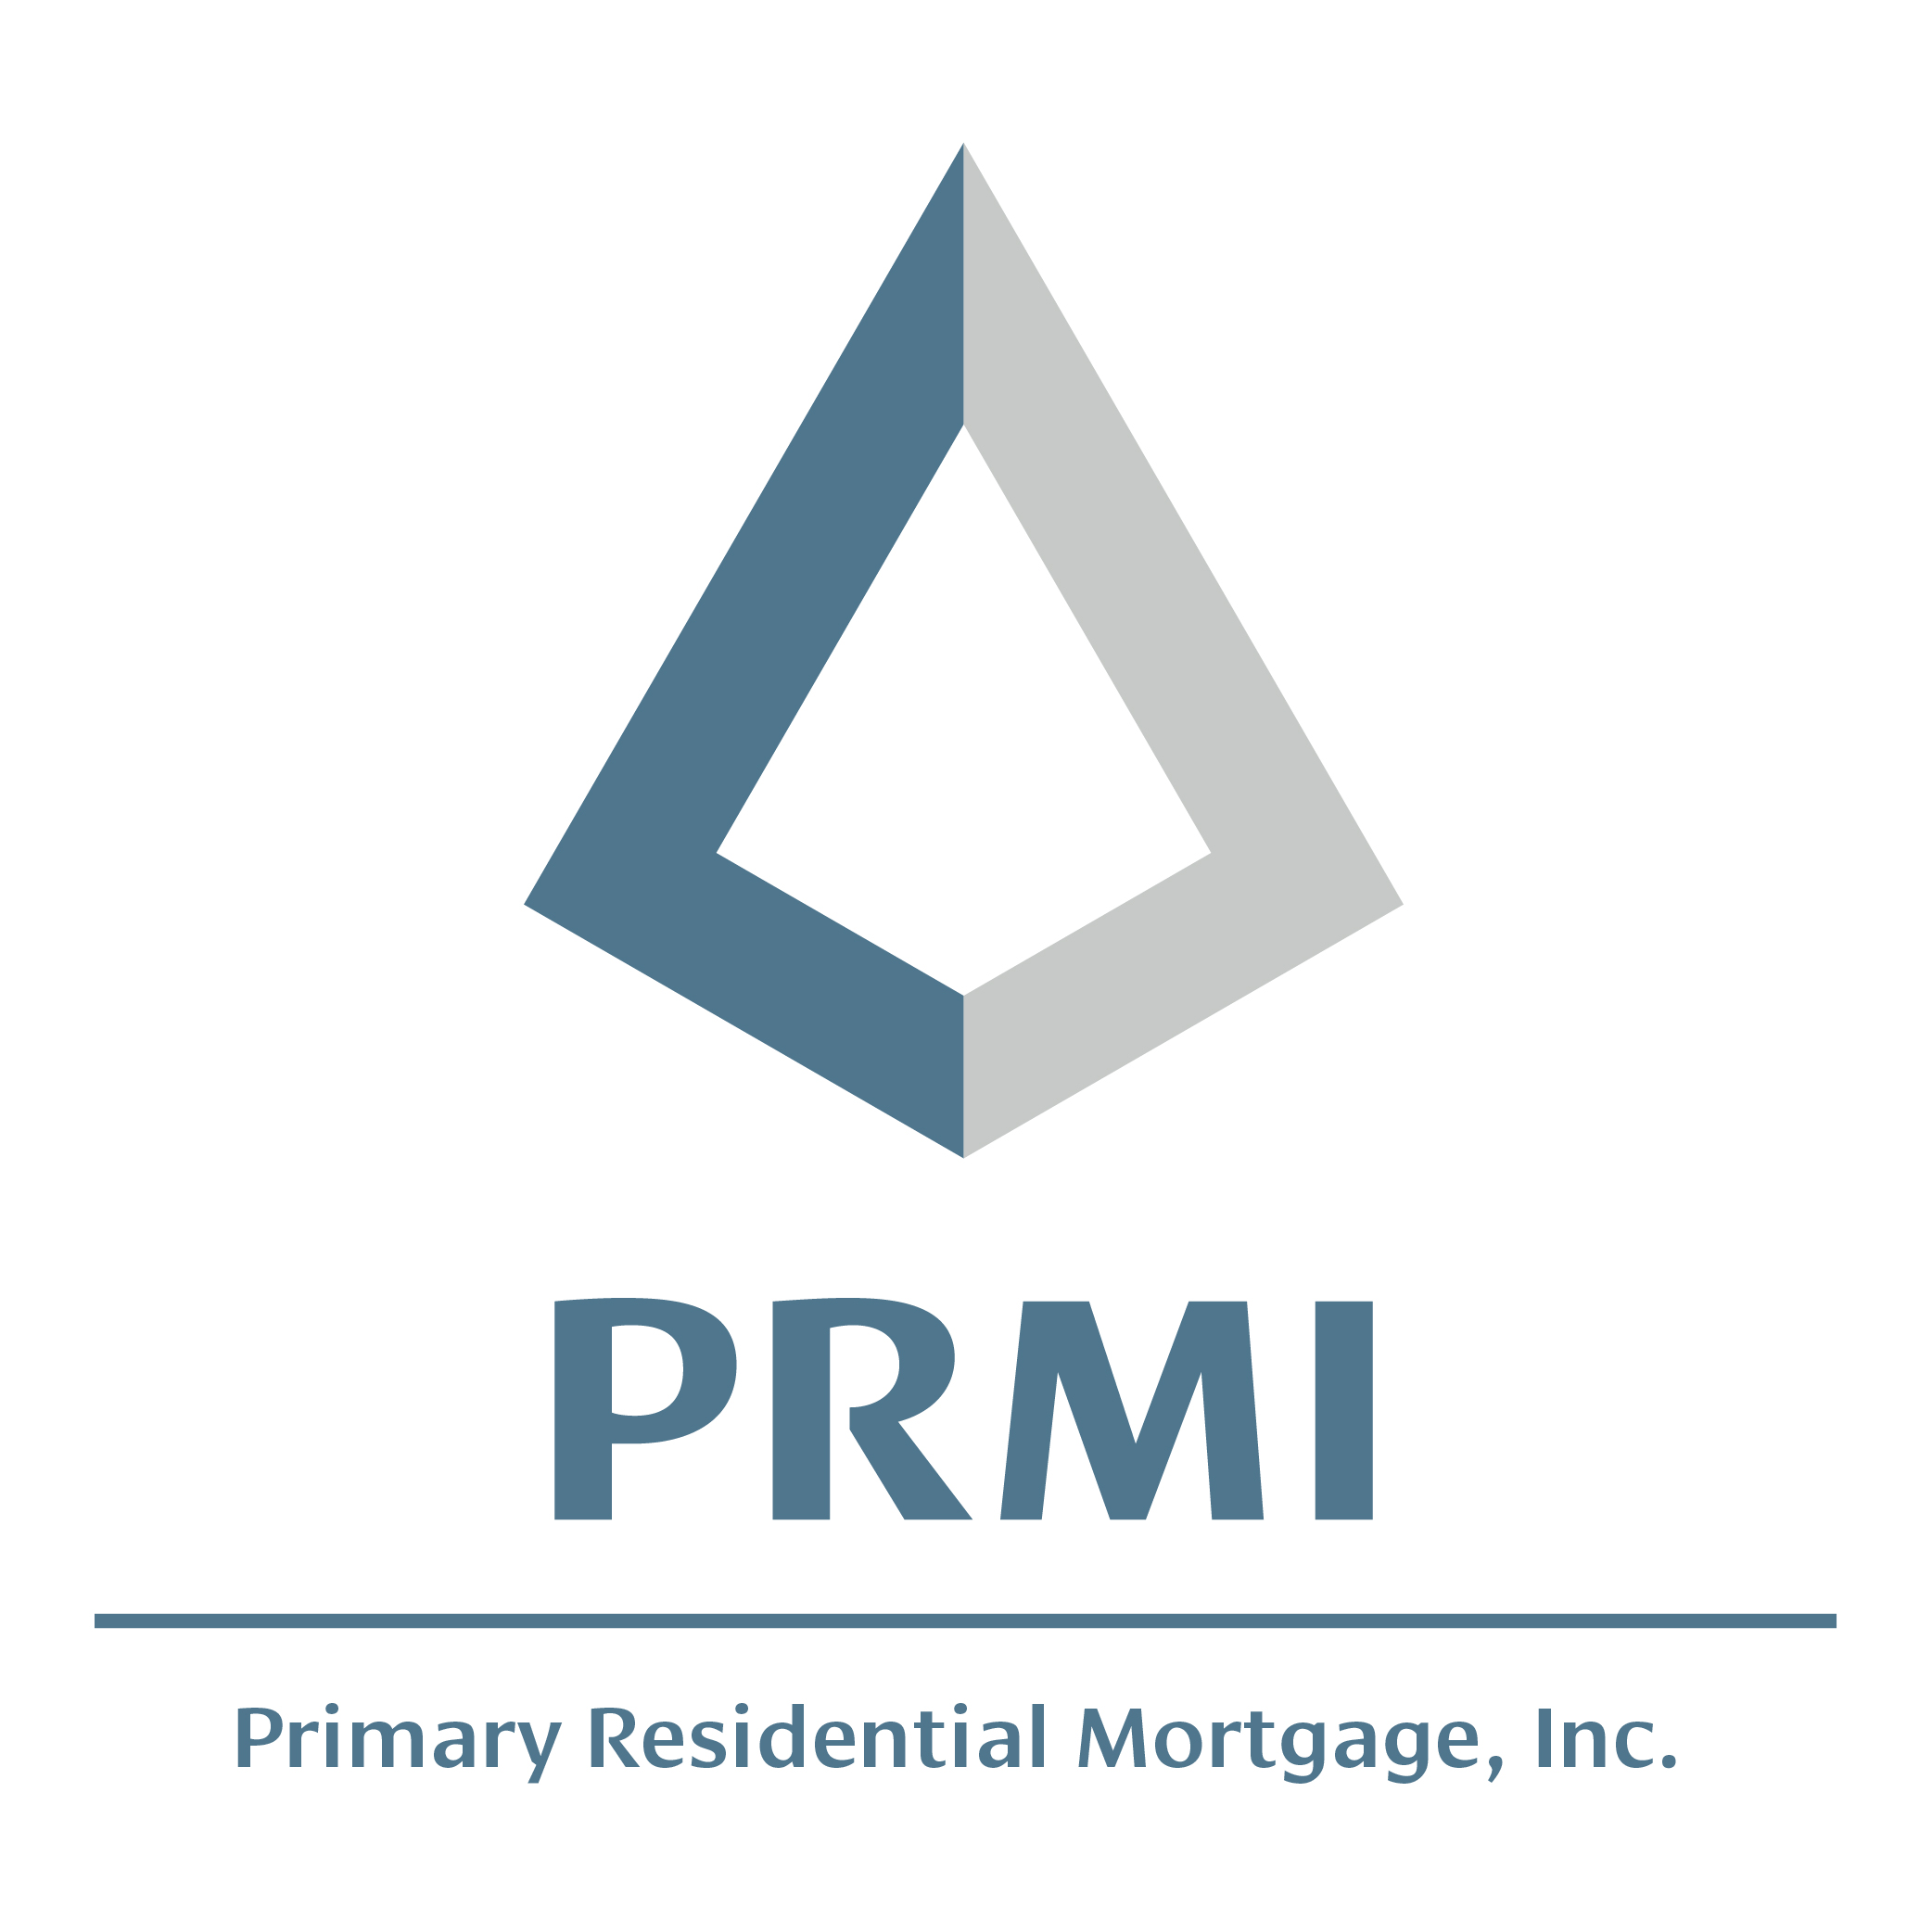 Primary Residential Mortgage, Inc. - Newton, KS 67114 - (316)804-4881 | ShowMeLocal.com